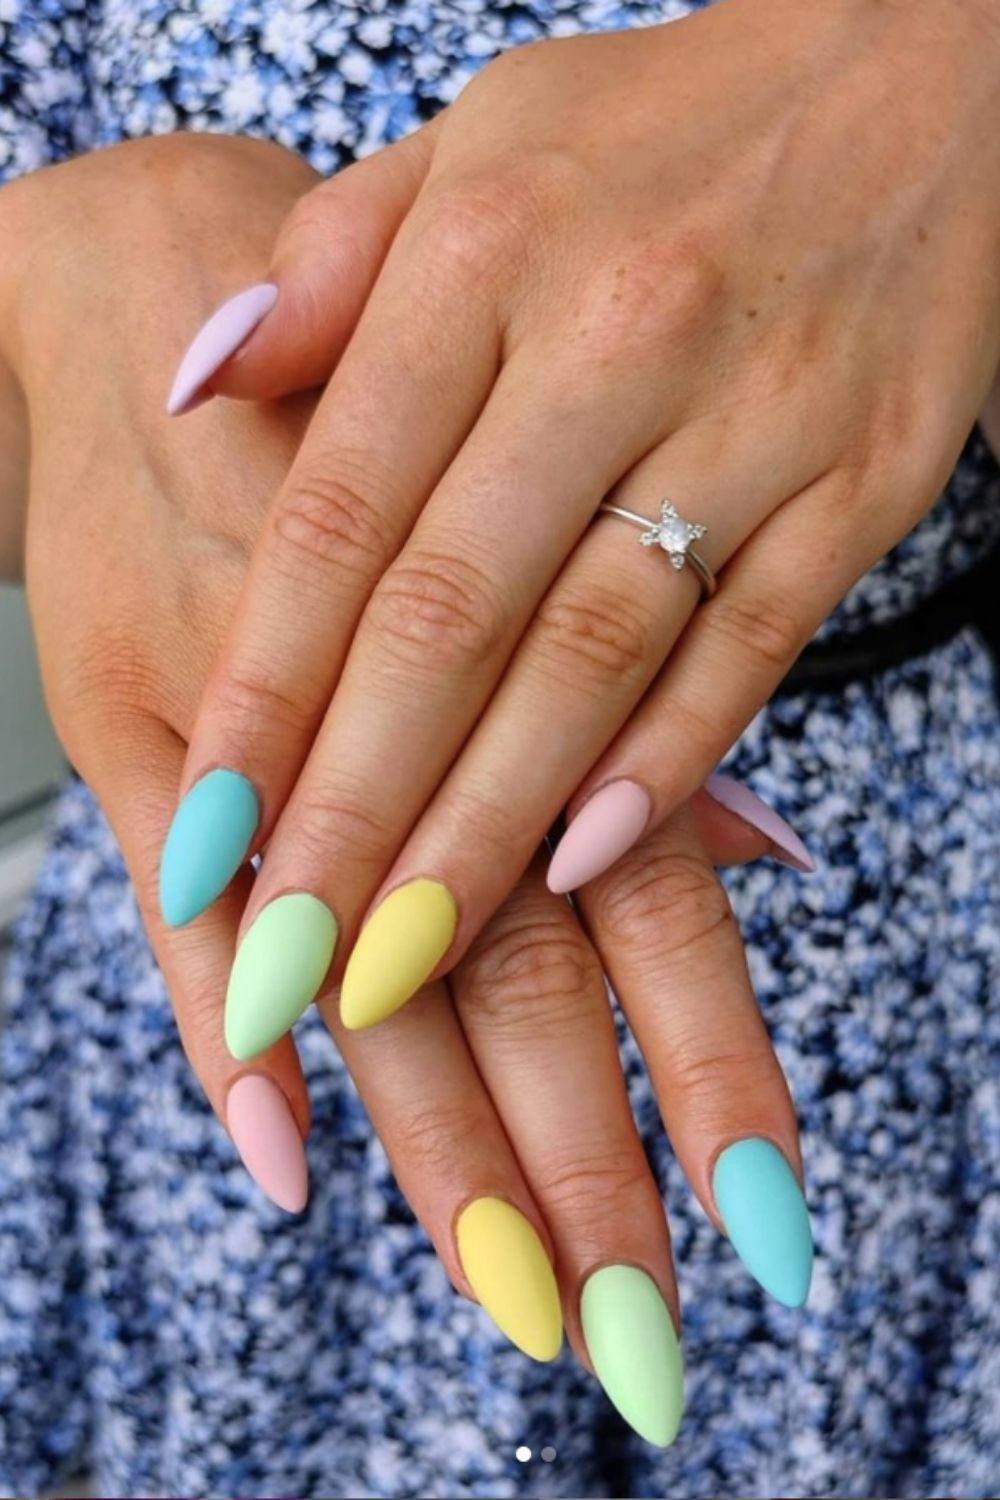 Almond-shaped nails colors